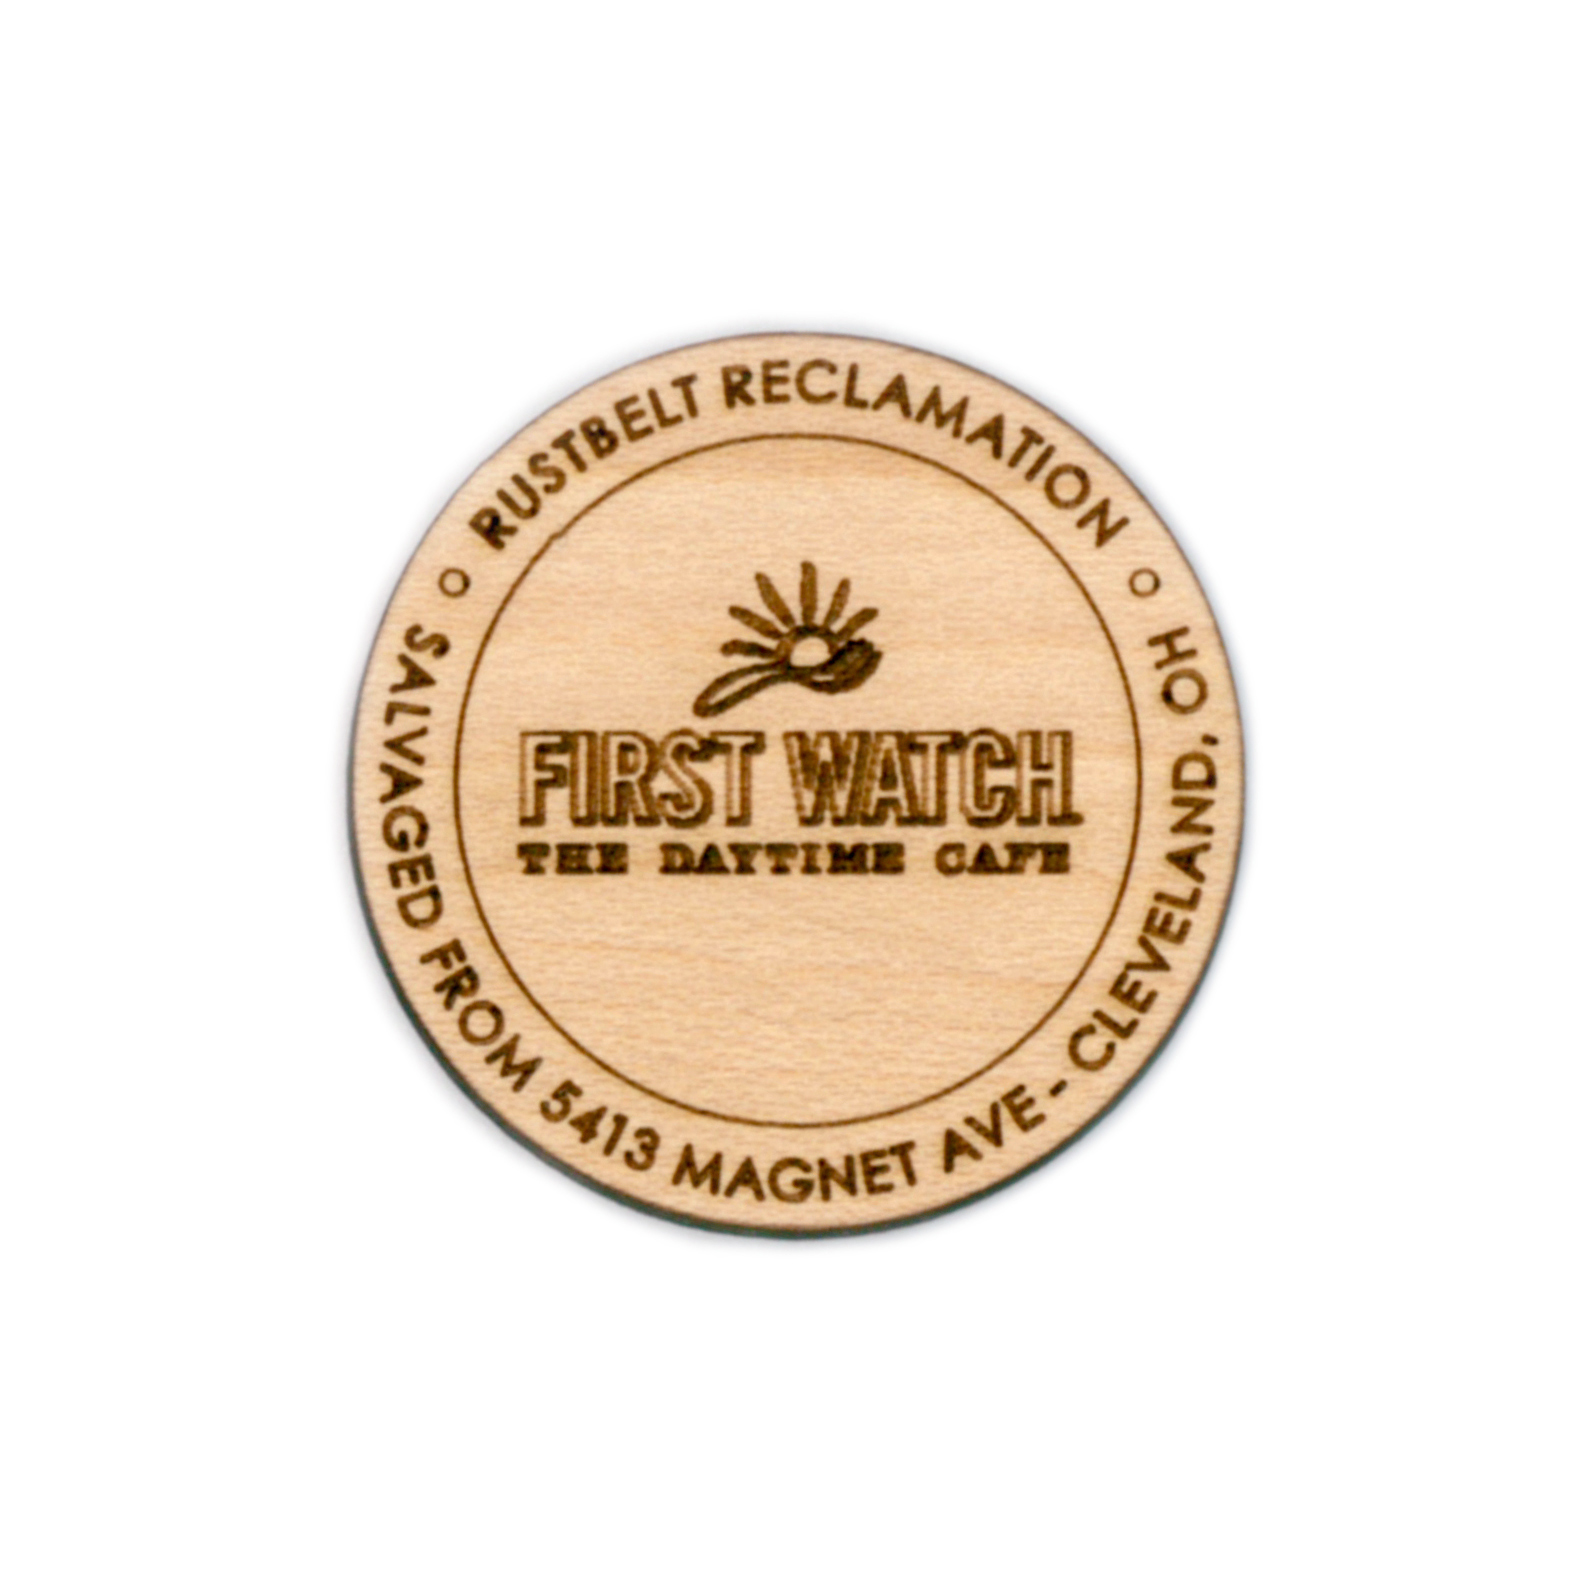 FIRST WATCH LOGO - 1.5ӯ MAPLE